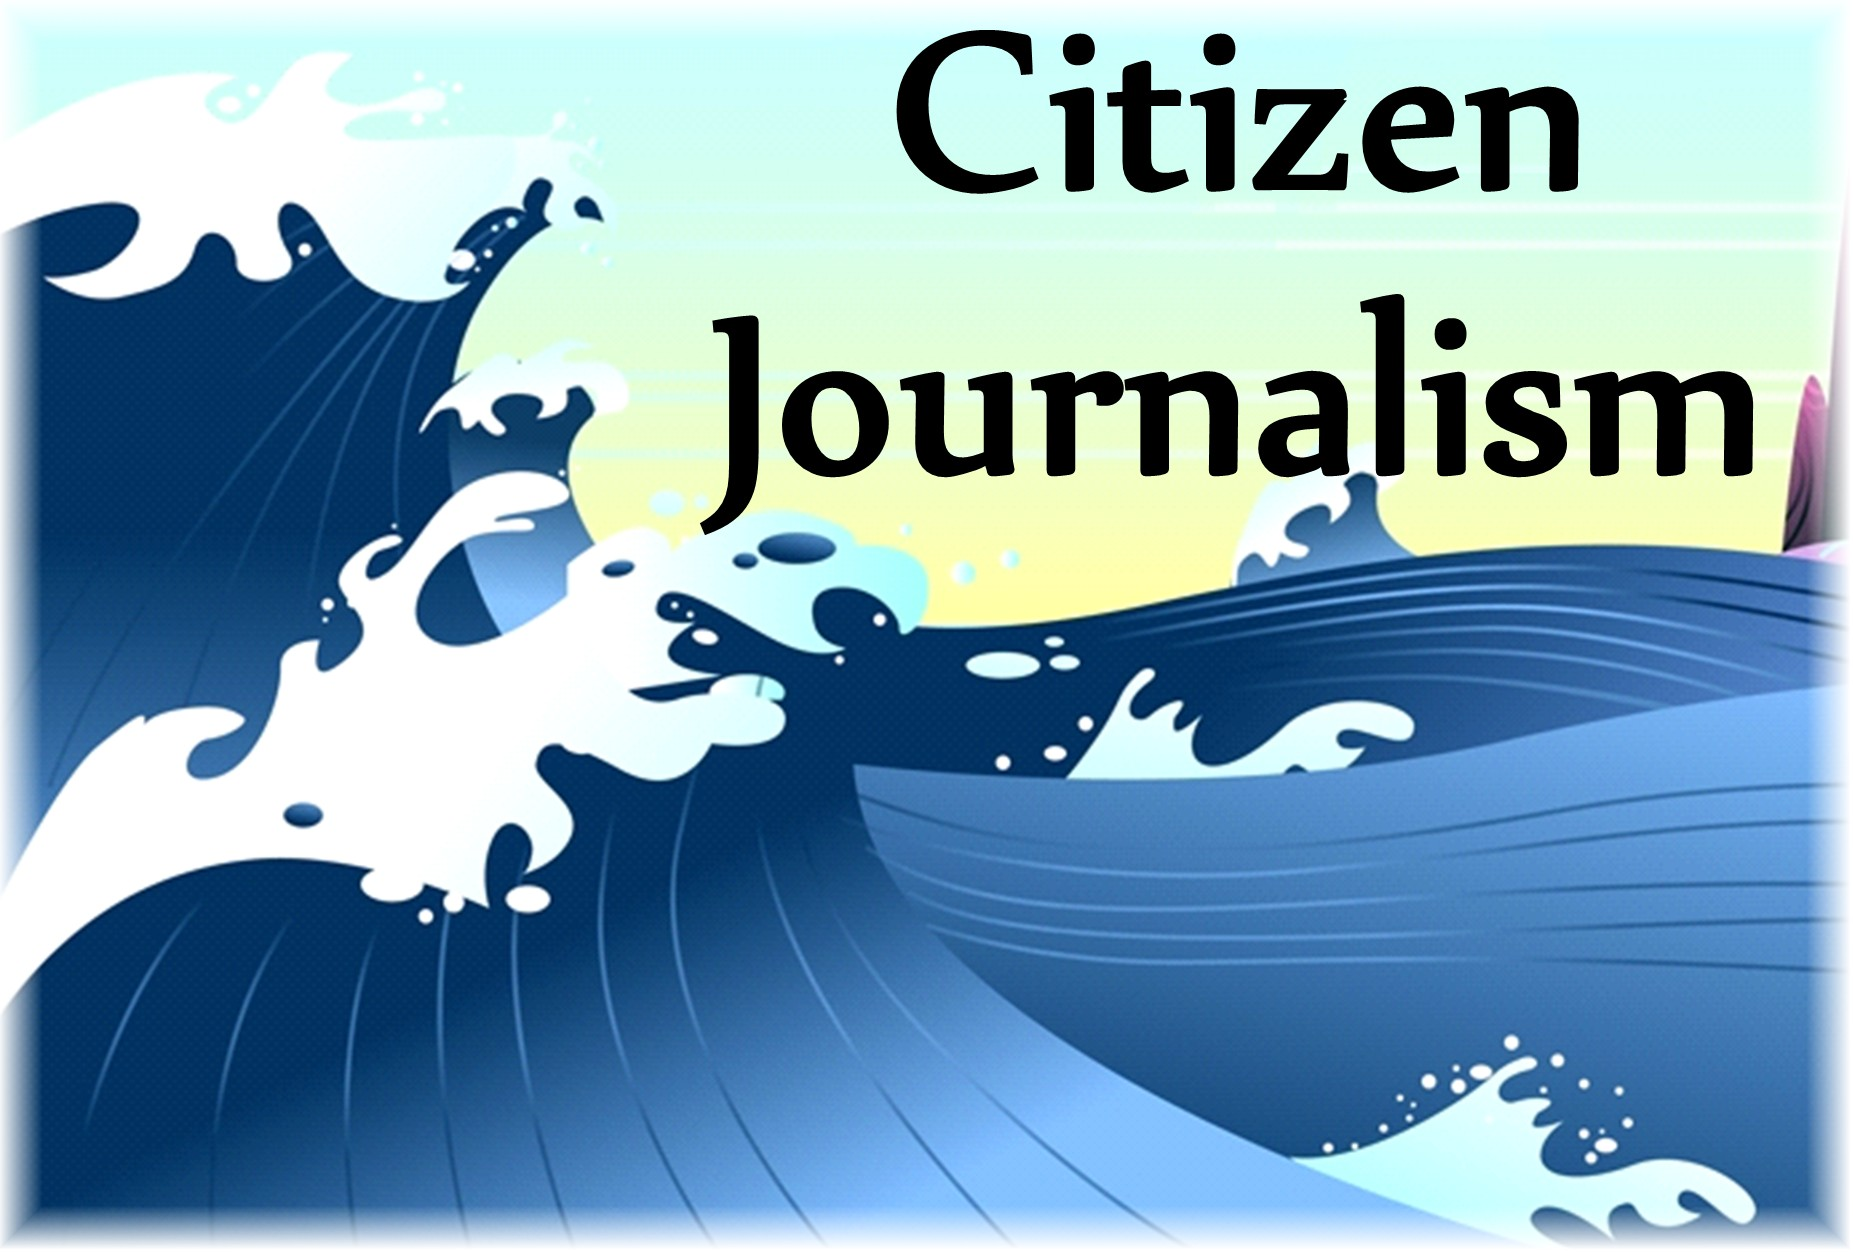 citizen journalist Citizen journalism is growing because portable video cameras makes it possible to capture video news and share it with the world at video upload sites.